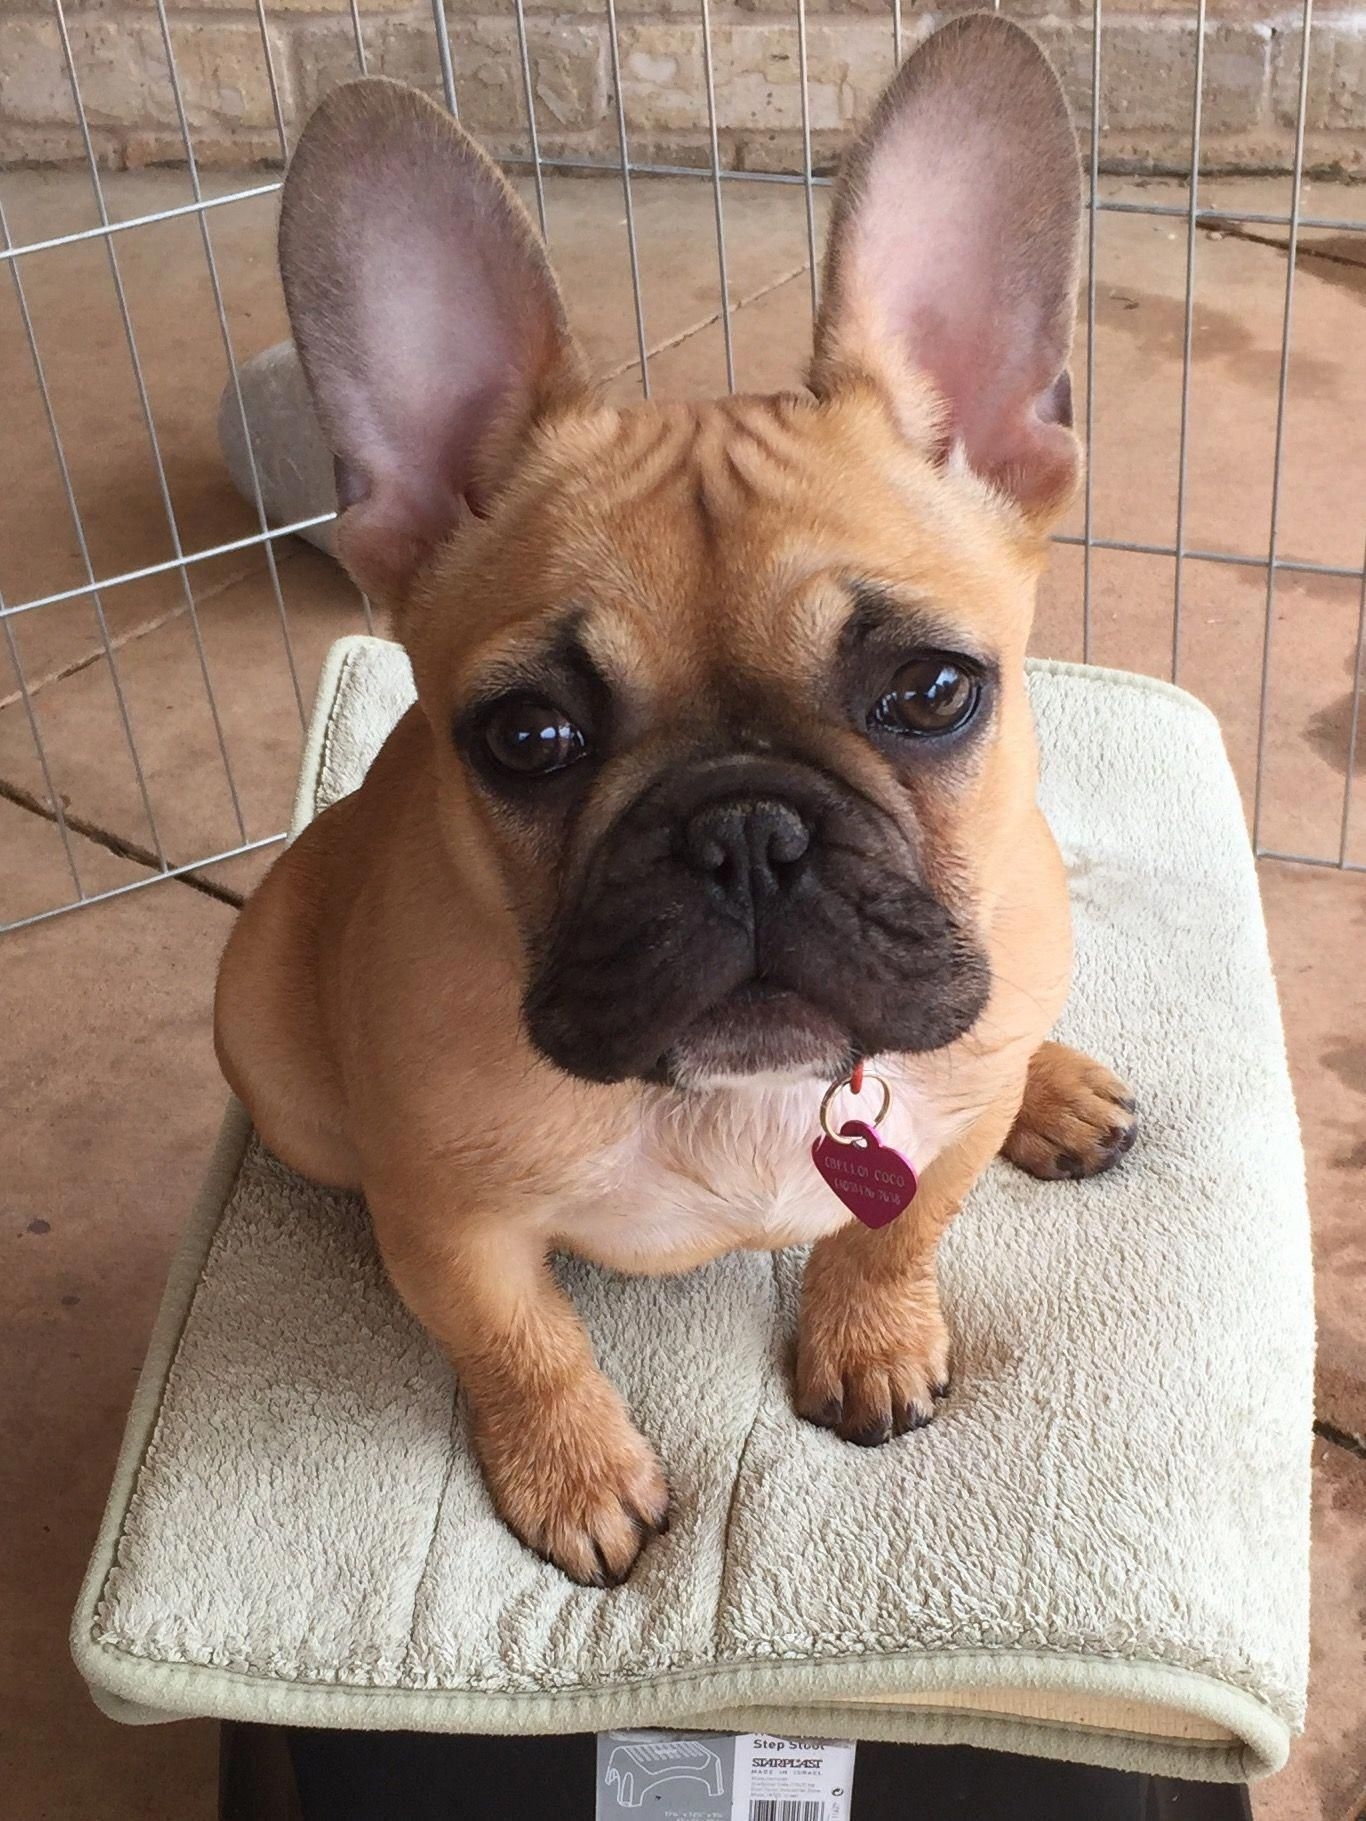 Things I Enjoy About The Friendly French Bulldog Puppies